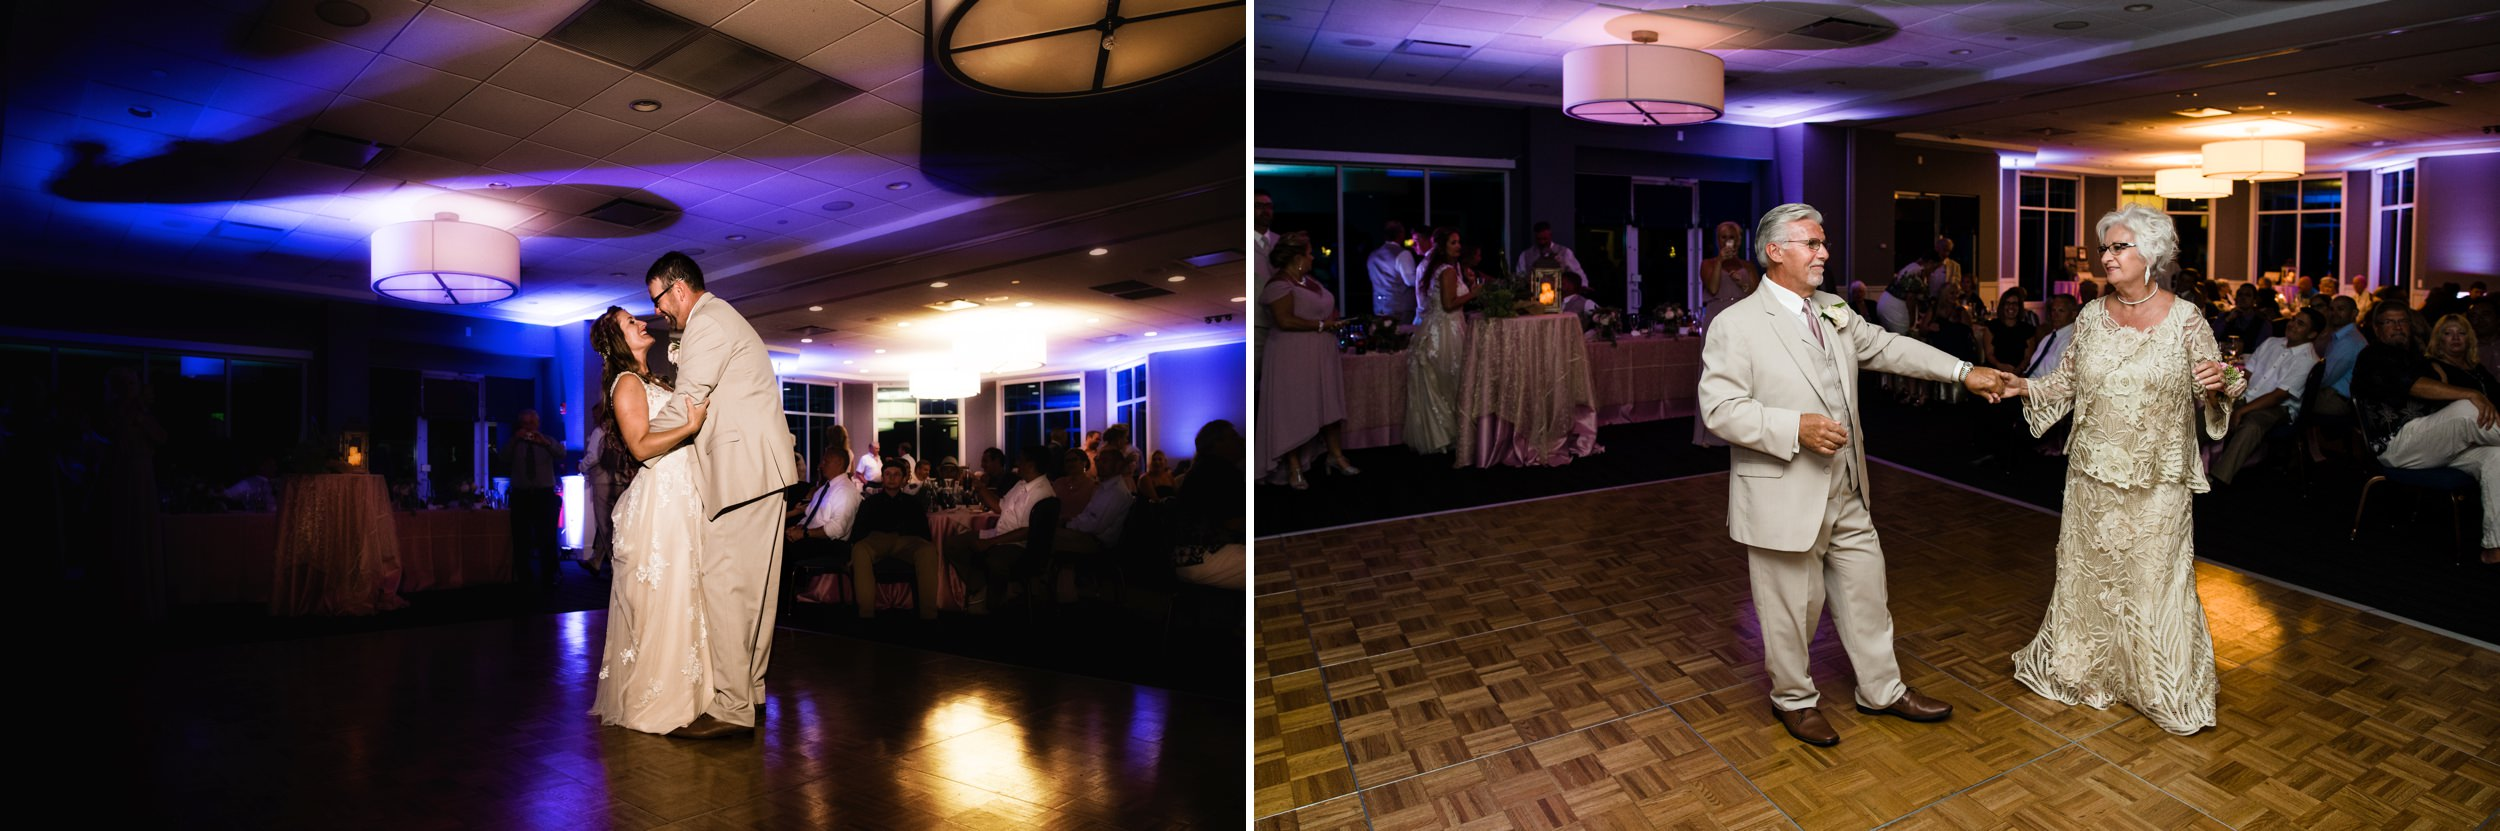 First dances for the bride and groom and the 50th Anniversary couple.